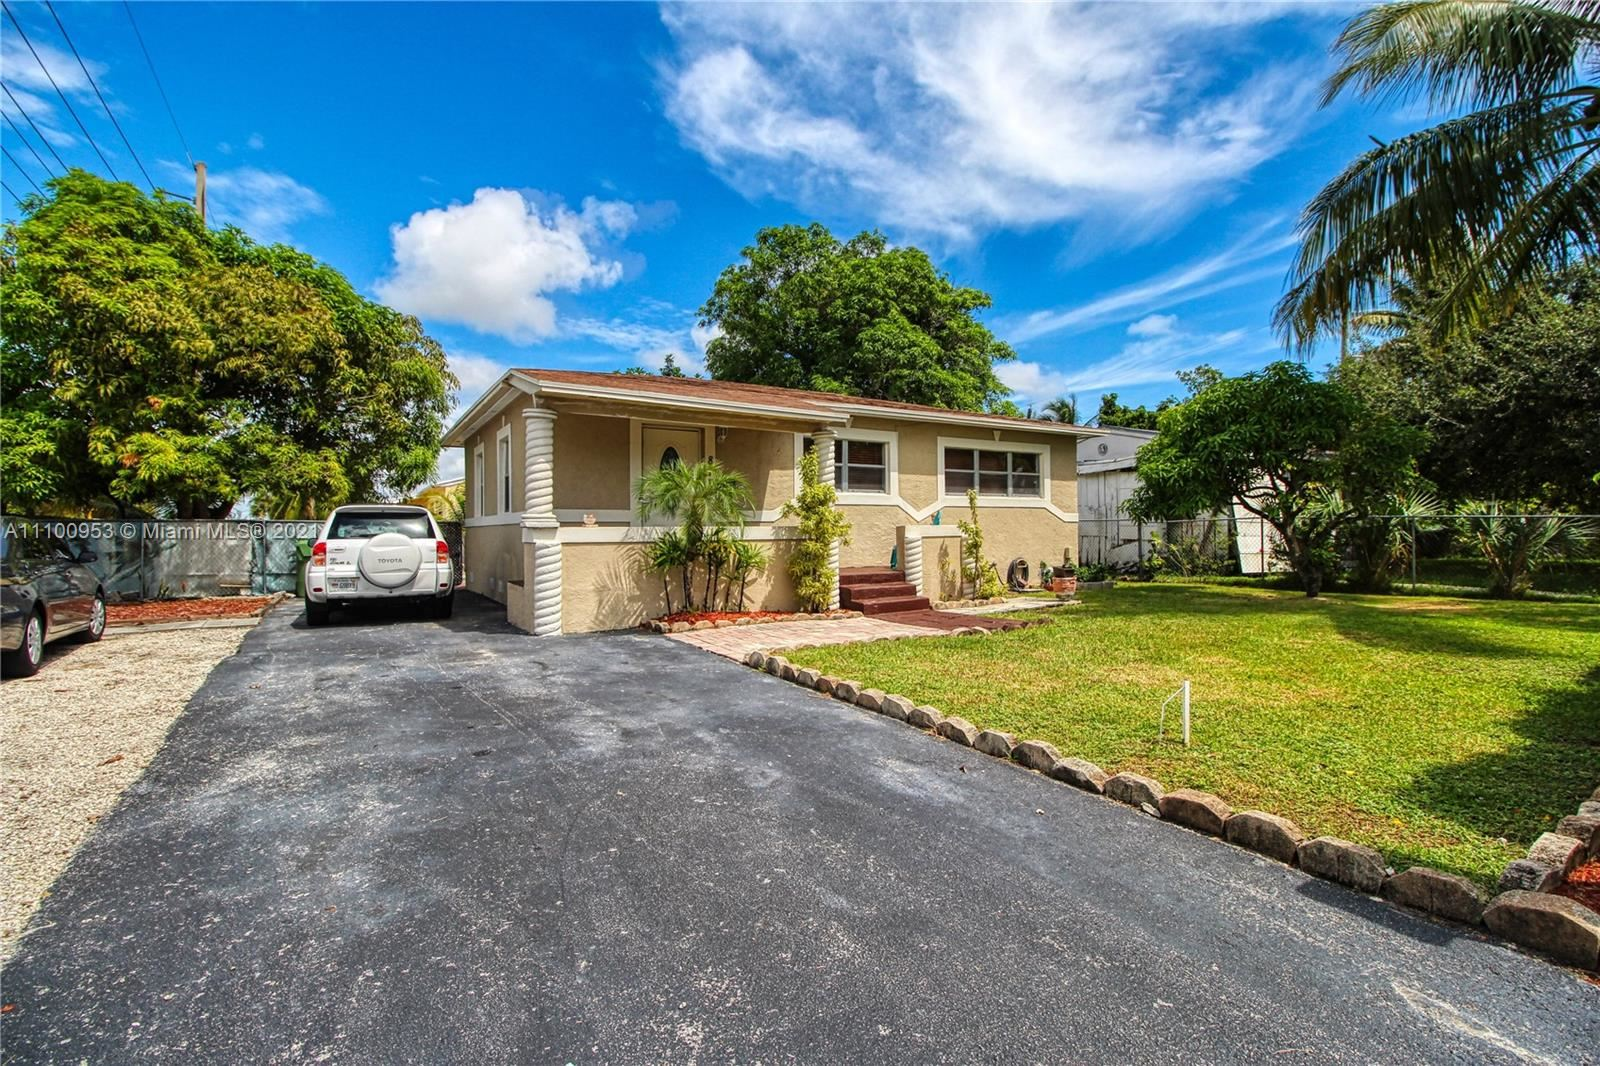 Photo of 817 NW 17th St, Fort Lauderdale, FL 33311 (MLS # A11100953)